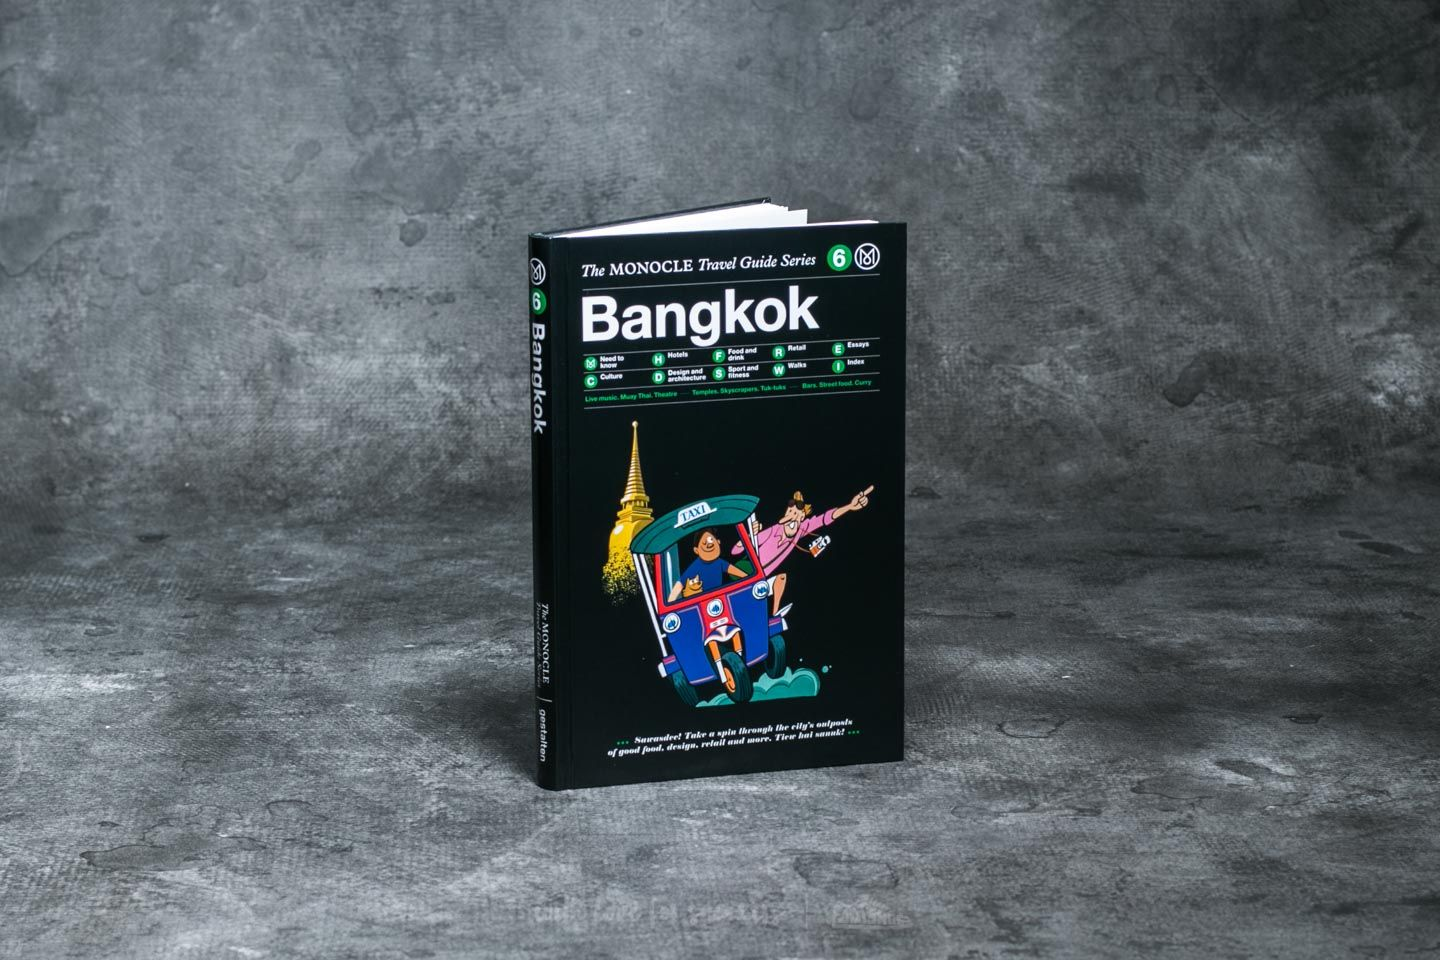 Monocle Bangkok Travel Guide